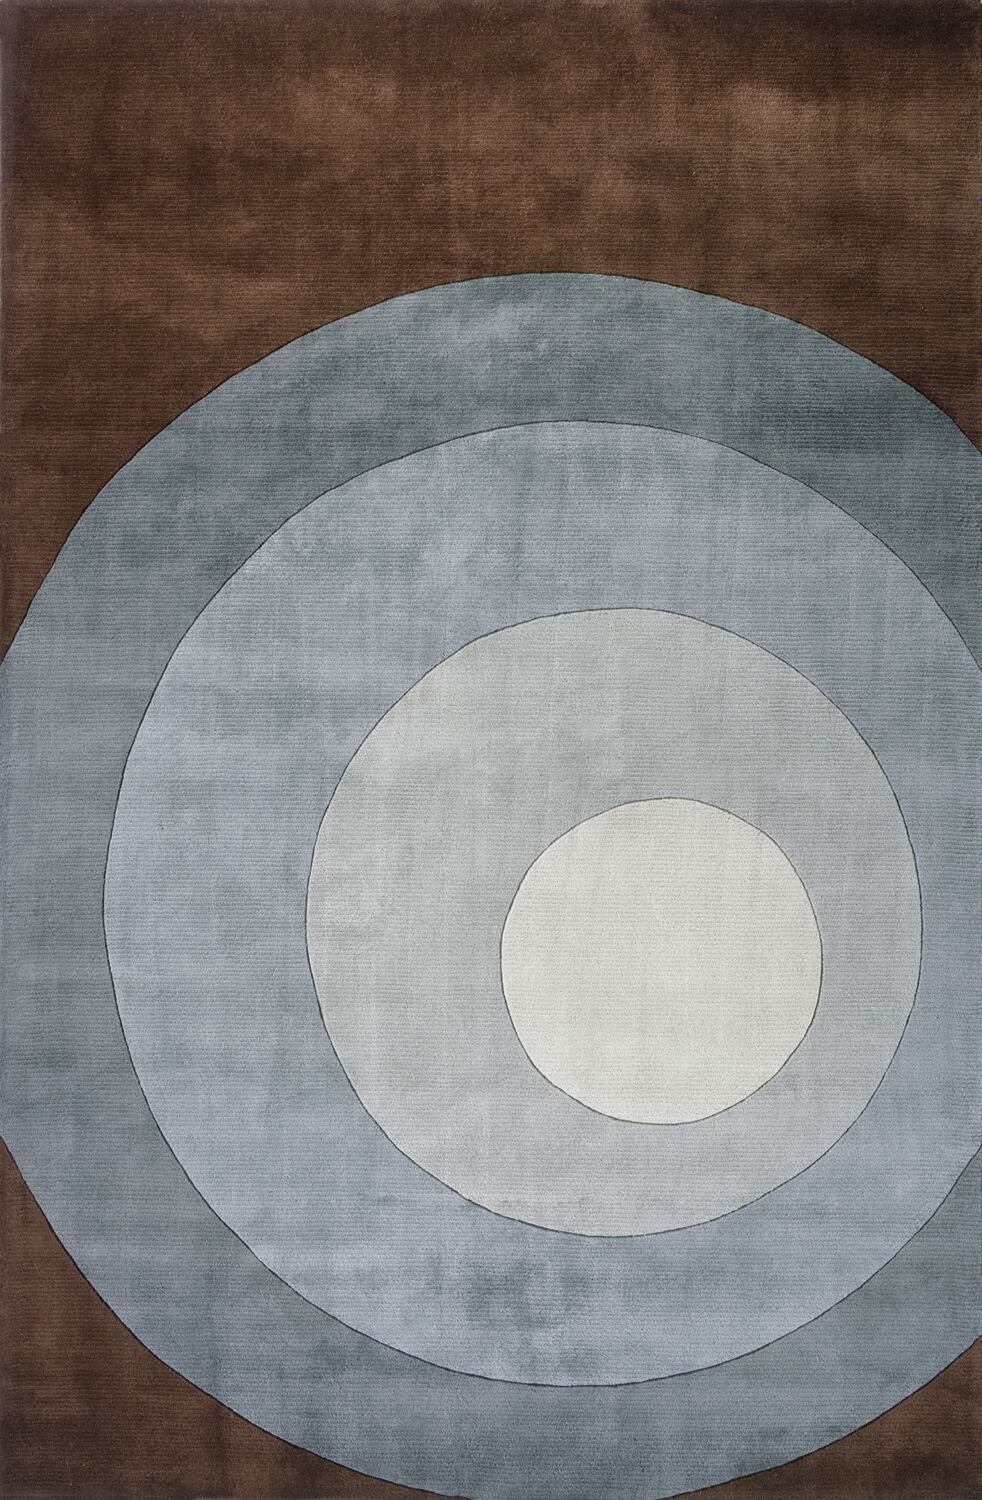 Rita Hand-Tufted Gray Area Rug Rug Size: Rectangle 9'6